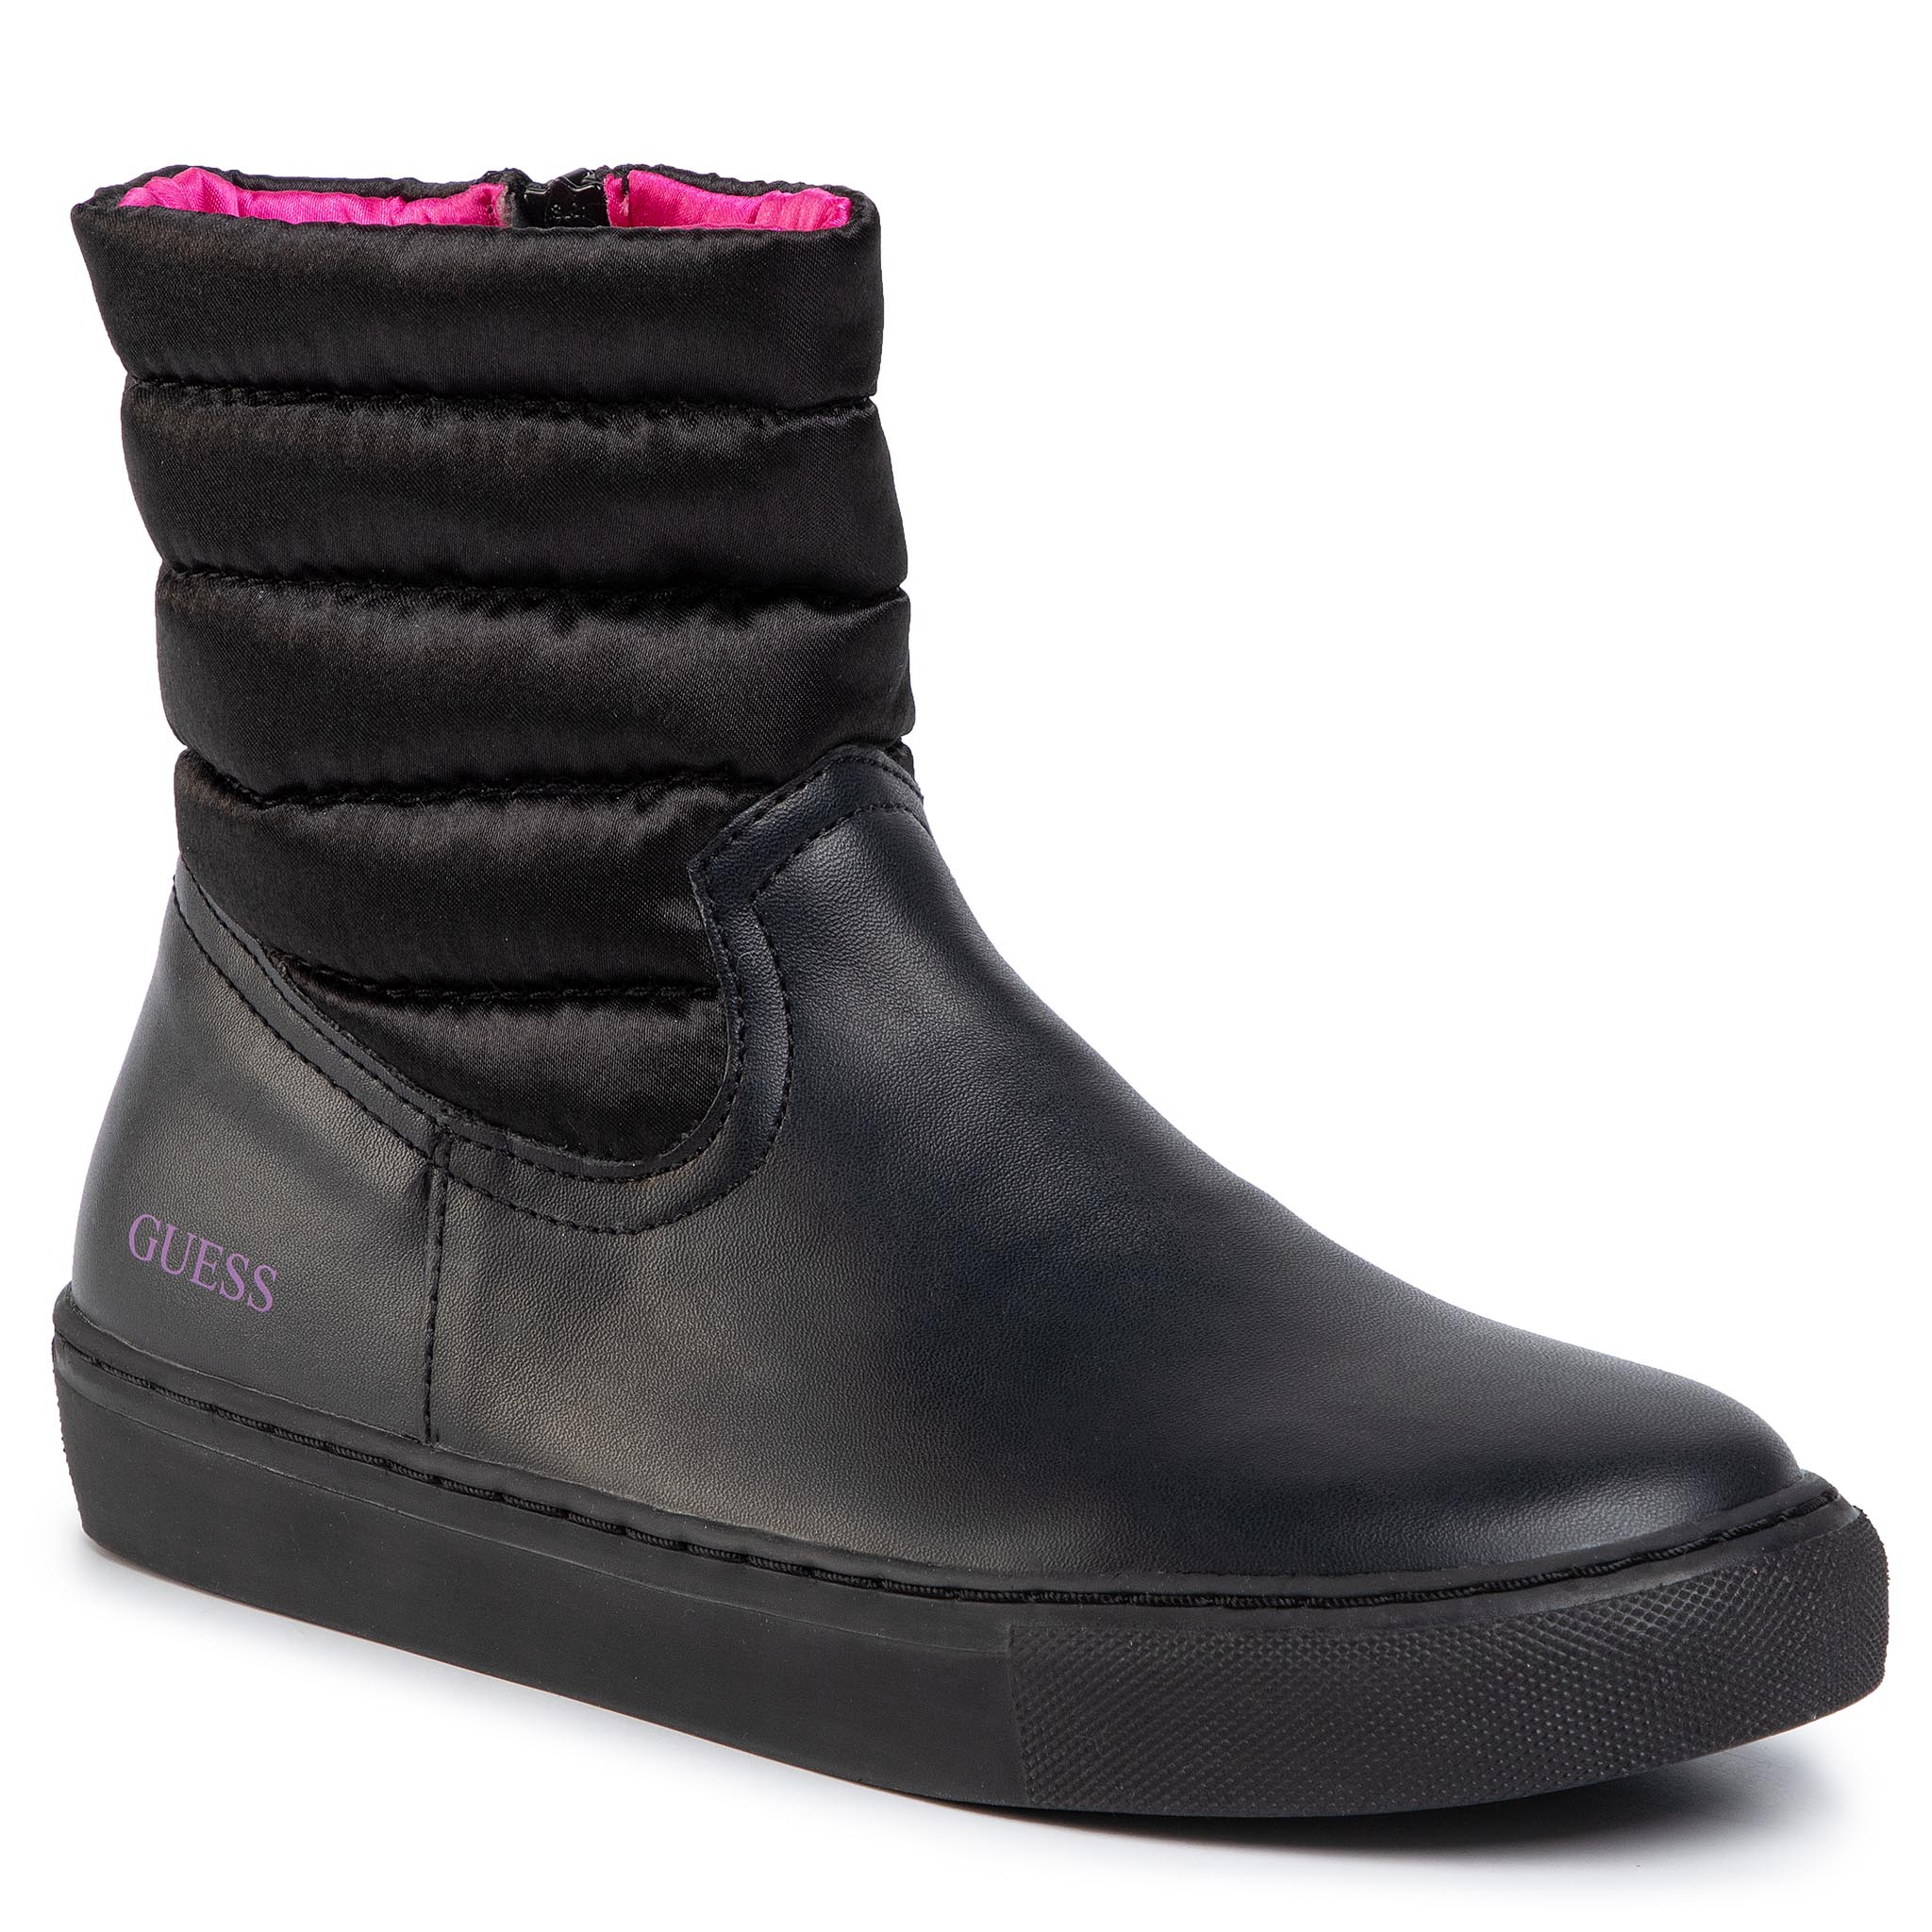 Cizme Guess - Jakie Fj8jak Ele10 Black imagine epantofi.ro 2021